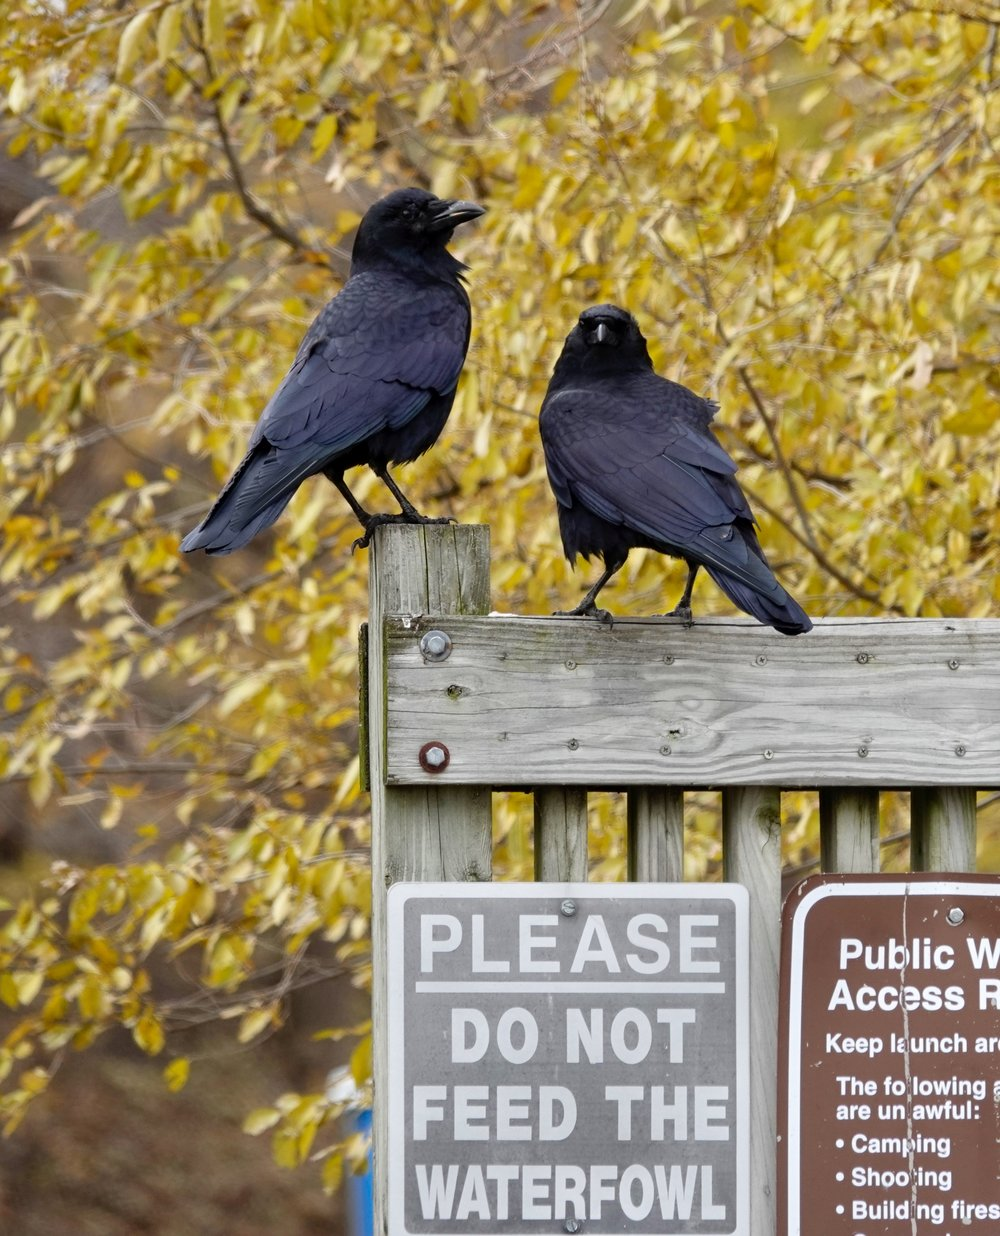 These two crows were letting everyone know that they were not waterfowl.